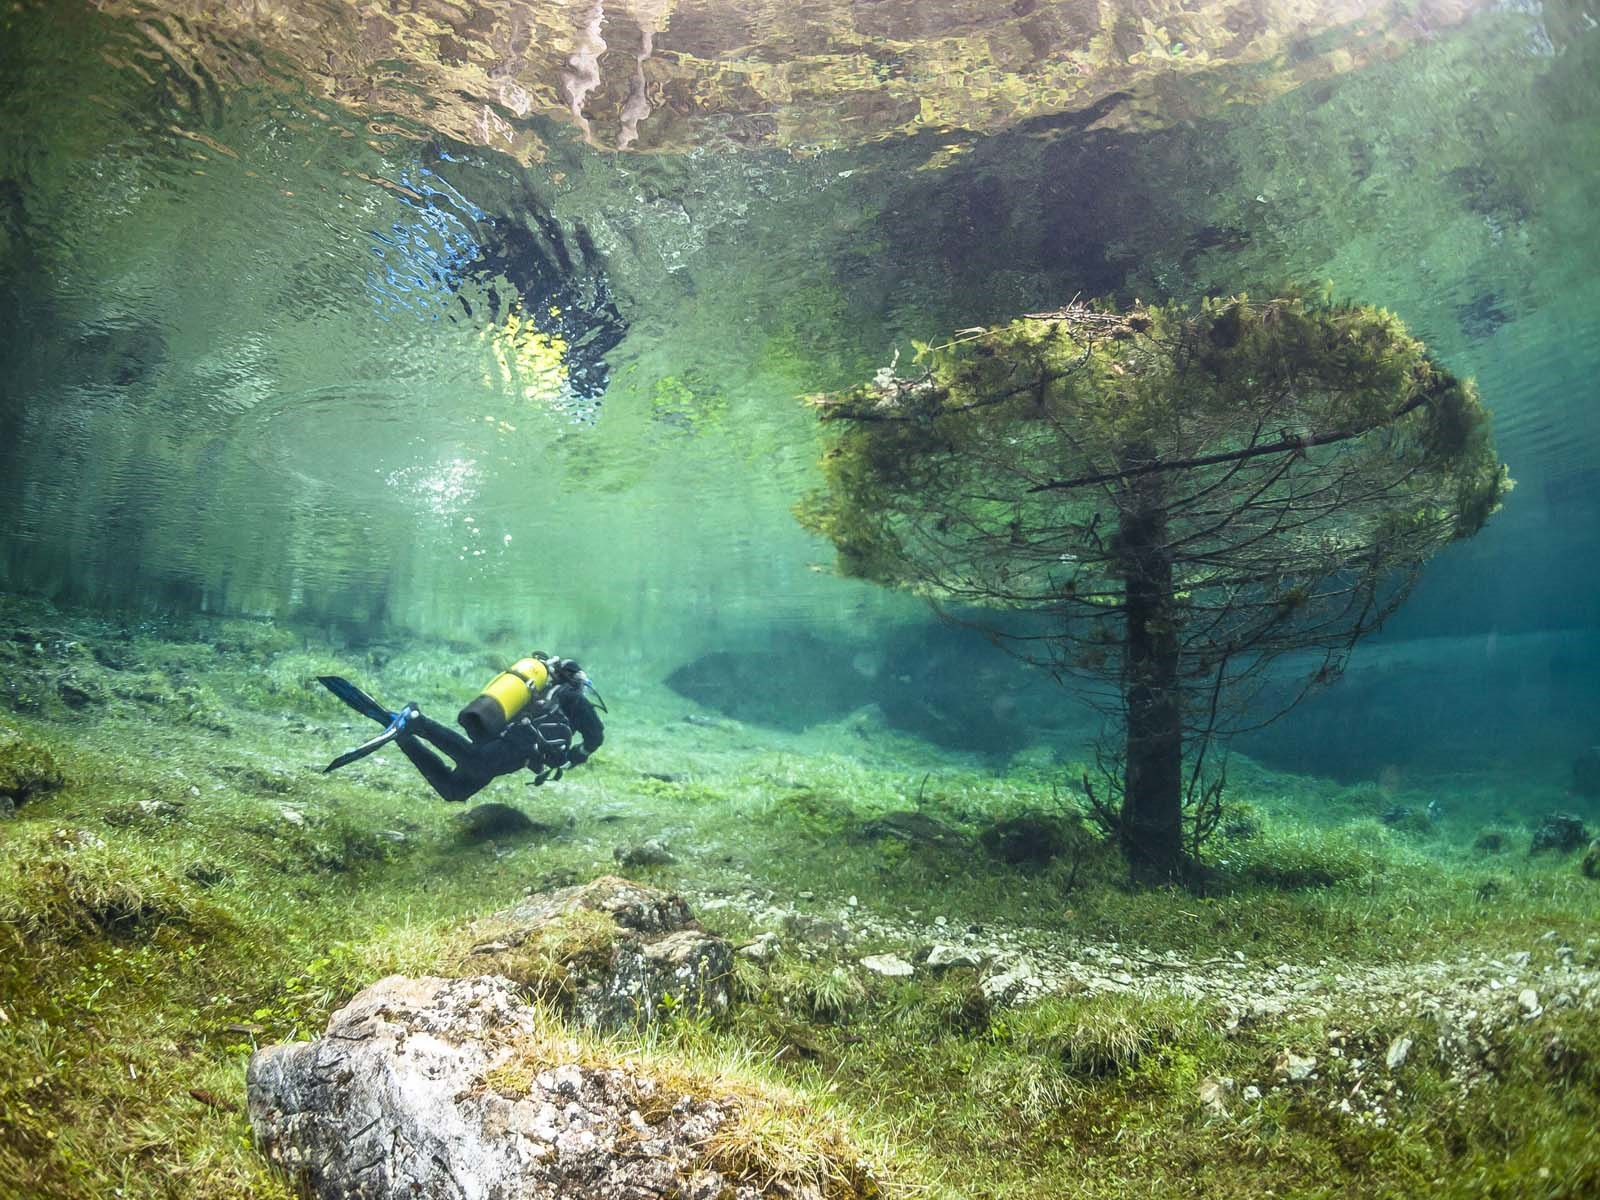 """Mandatory Credit: Photo by REX/Marc Henauer/Solent News (3010613d) A scuba diver explores the flooded park around Green Lake Green Lake, which doubles in size and covers a park at certain times of the year, Tragoess, Austria - 2013 *Full story: http://www.rexfeatures.com/nanolink/mjhf These photographs appear to show a spectacular underwater world. Twelve metres of water covers trees, footpaths, benches and bridges that are only accessible at certain times of the year. During the winter Green Lake in Tragoess, Austria, is normally only one metre deep and visitors can stroll through the park next to the picturesque lagoon. However, at certain times of the year snowmelt from the nearby Karst mountains floods the lake and everything surrounding it. At this point an extra 12 metres of water, which is crystal clear and with a temeprature of seven degree celsius, helps to double the size of Green Lake from 2,000 square metres to 4,000. Marc Henauer, from Perly, Switzerland, and his wife travelled with their scuba diving gear to explore the flooded park. The 39-year-old said: """"When I was underwater, it felt like I was swimming in a magical world, it was so beautiful."""